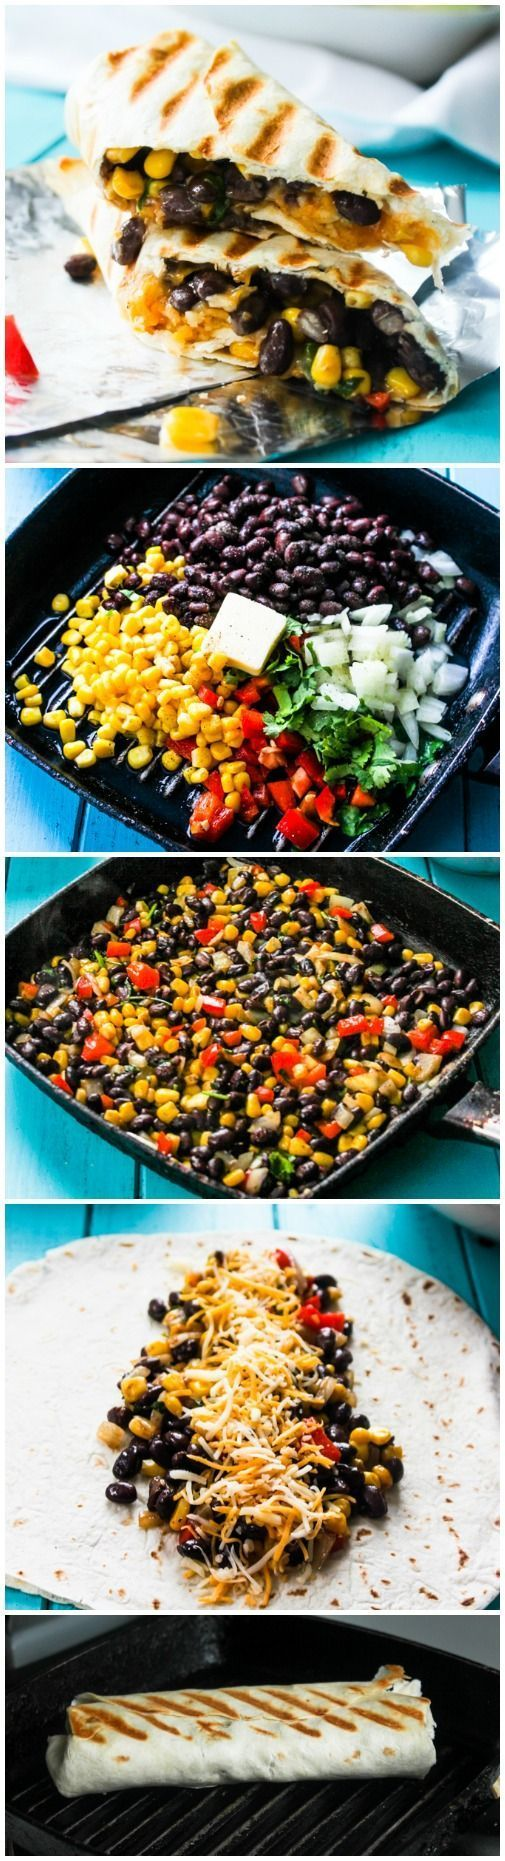 Quick and Easy Crispy Black Bean Burritos - I will change some of the ingredients to make it healthier - but this sounds amazing!